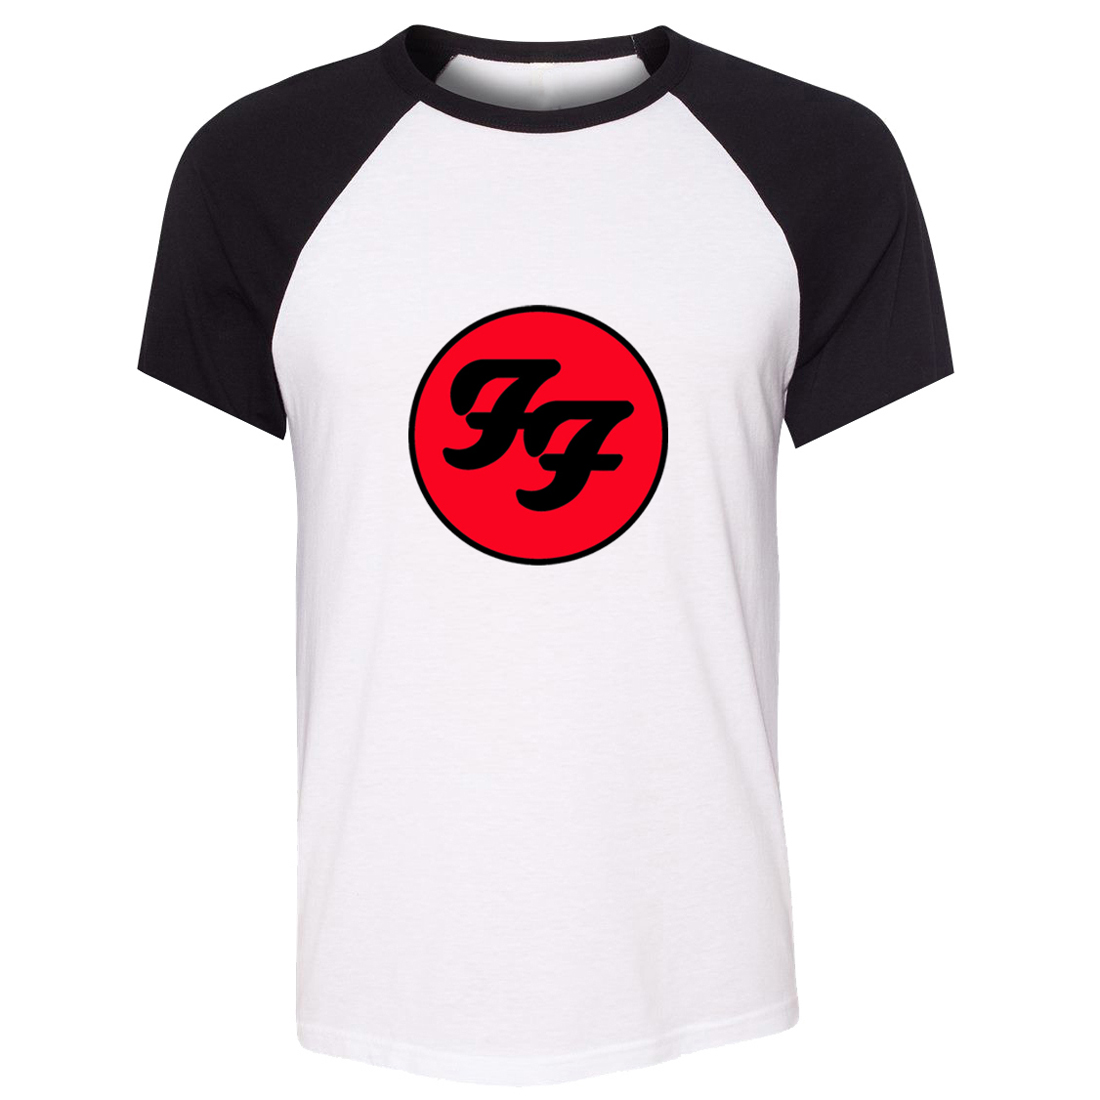 0fde8f9d Detail Feedback Questions about iDzn Unisex Summer T shirt Foo Fighters  Hard Rock And Roll Band Pattern Design Raglan Short Sleeve Men T shirt  Casual Tee ...